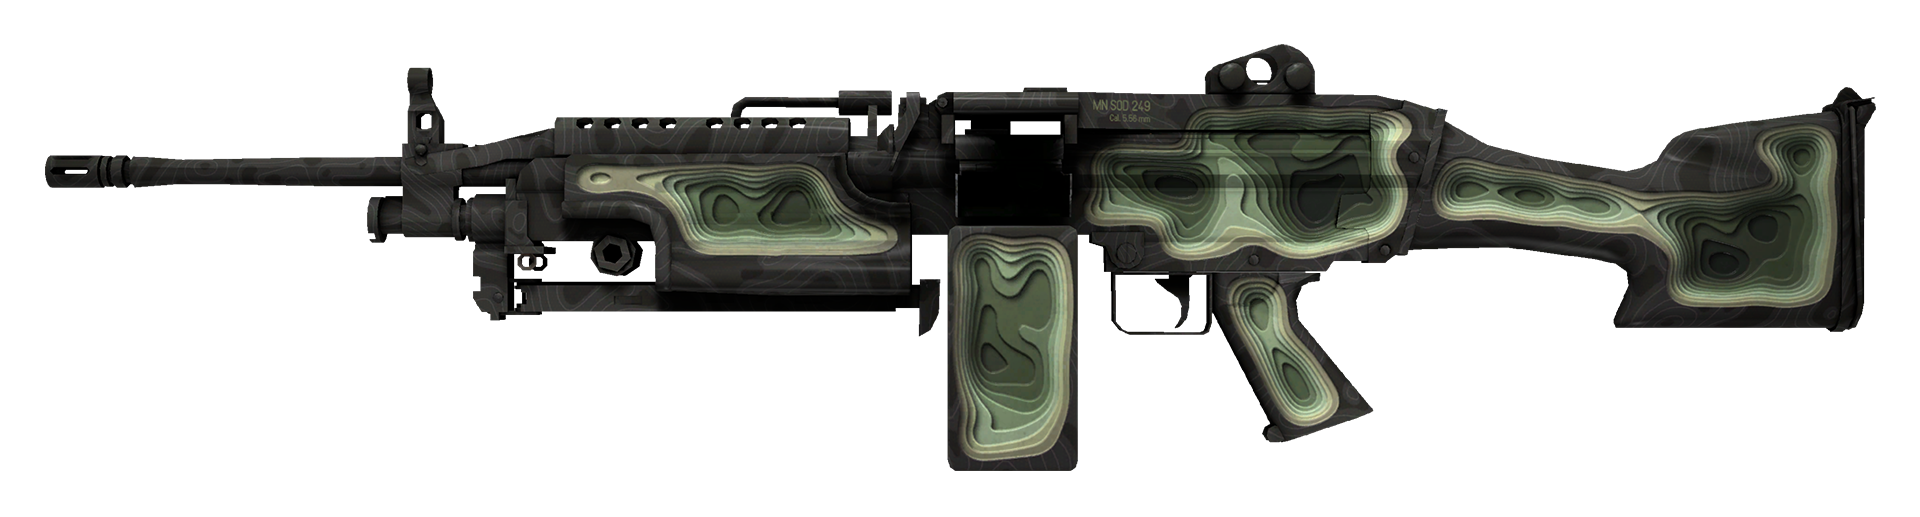 M249 Deep Relief Large Rendering